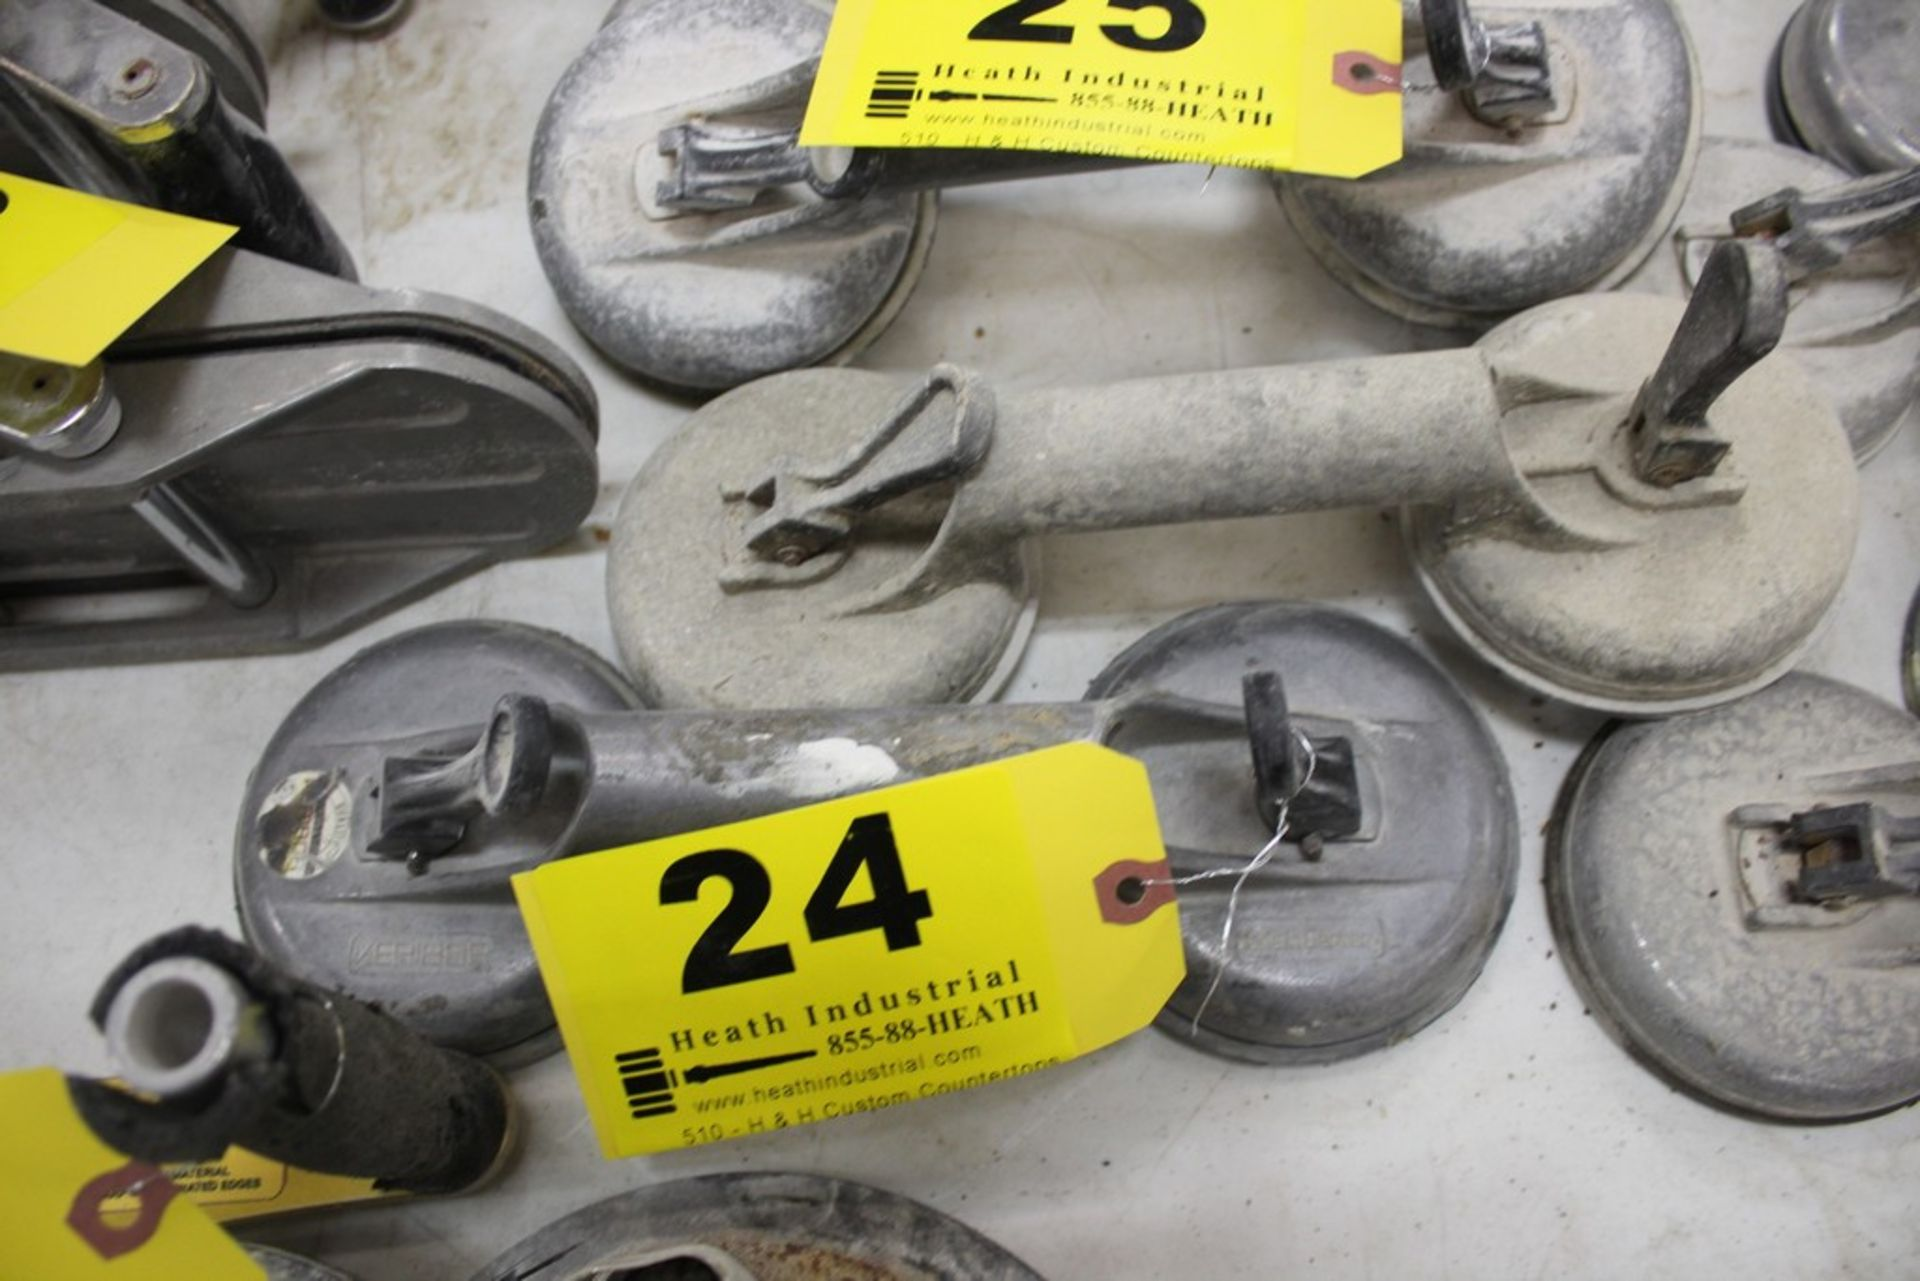 Lot 24 - PAIR OF VERIBOR SUCTION CUP MATERIAL LIFTERS